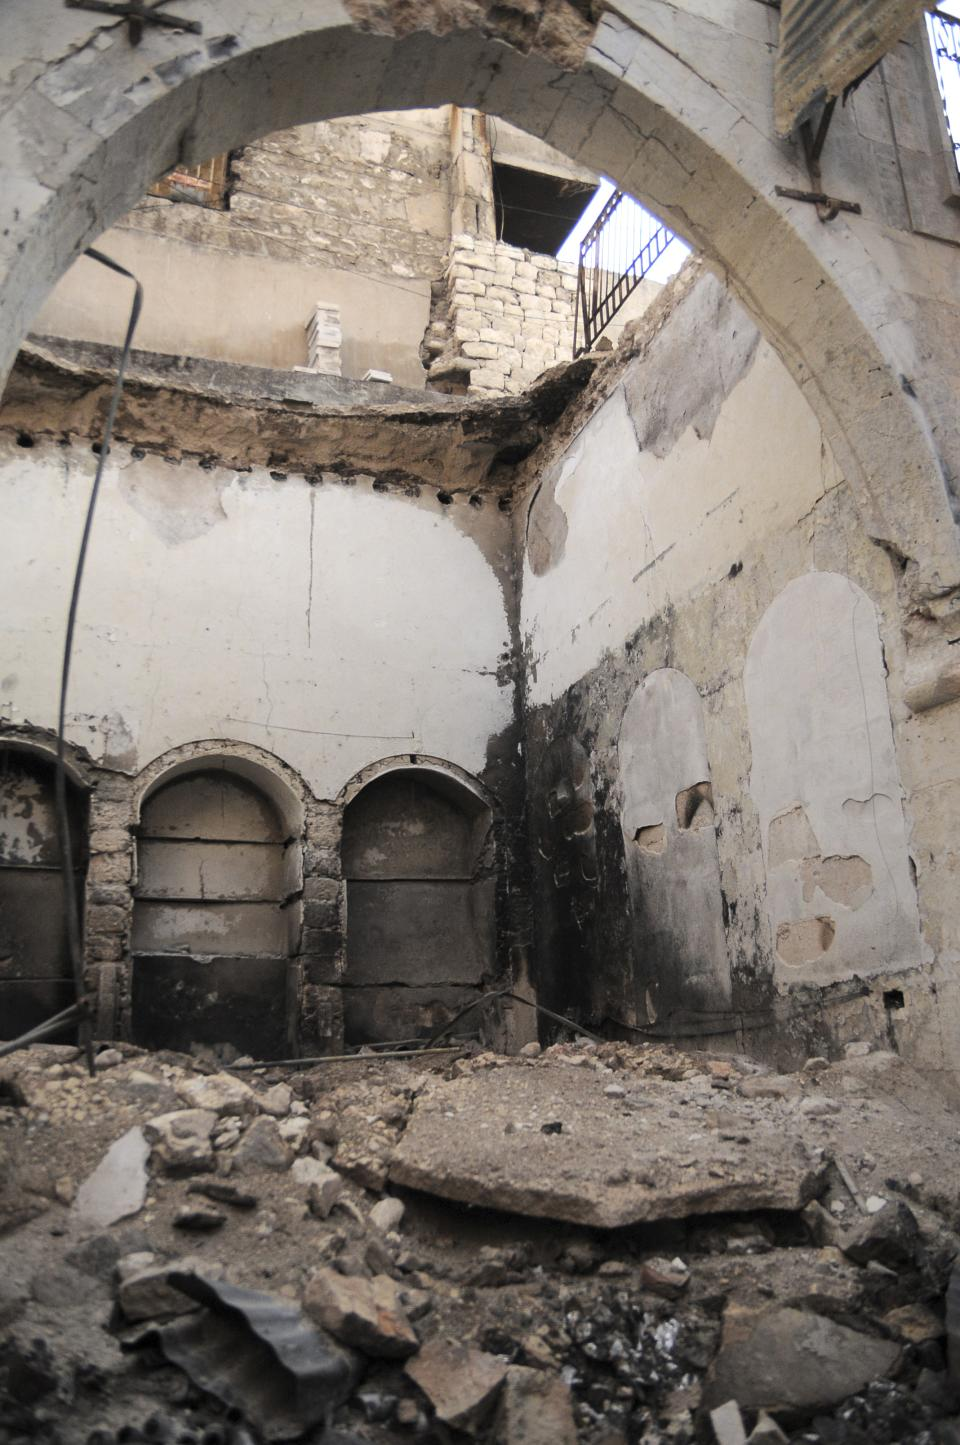 In this Tuesday, Nov. 6, 2012 photo, a general view of a destroyed building inside the Old City of Aleppo, Syria, a listed UNESCO World Heritage Site that was gutted in October and which is now controlled by the Free Syrian Army.(AP Photo/Monica Prieto)